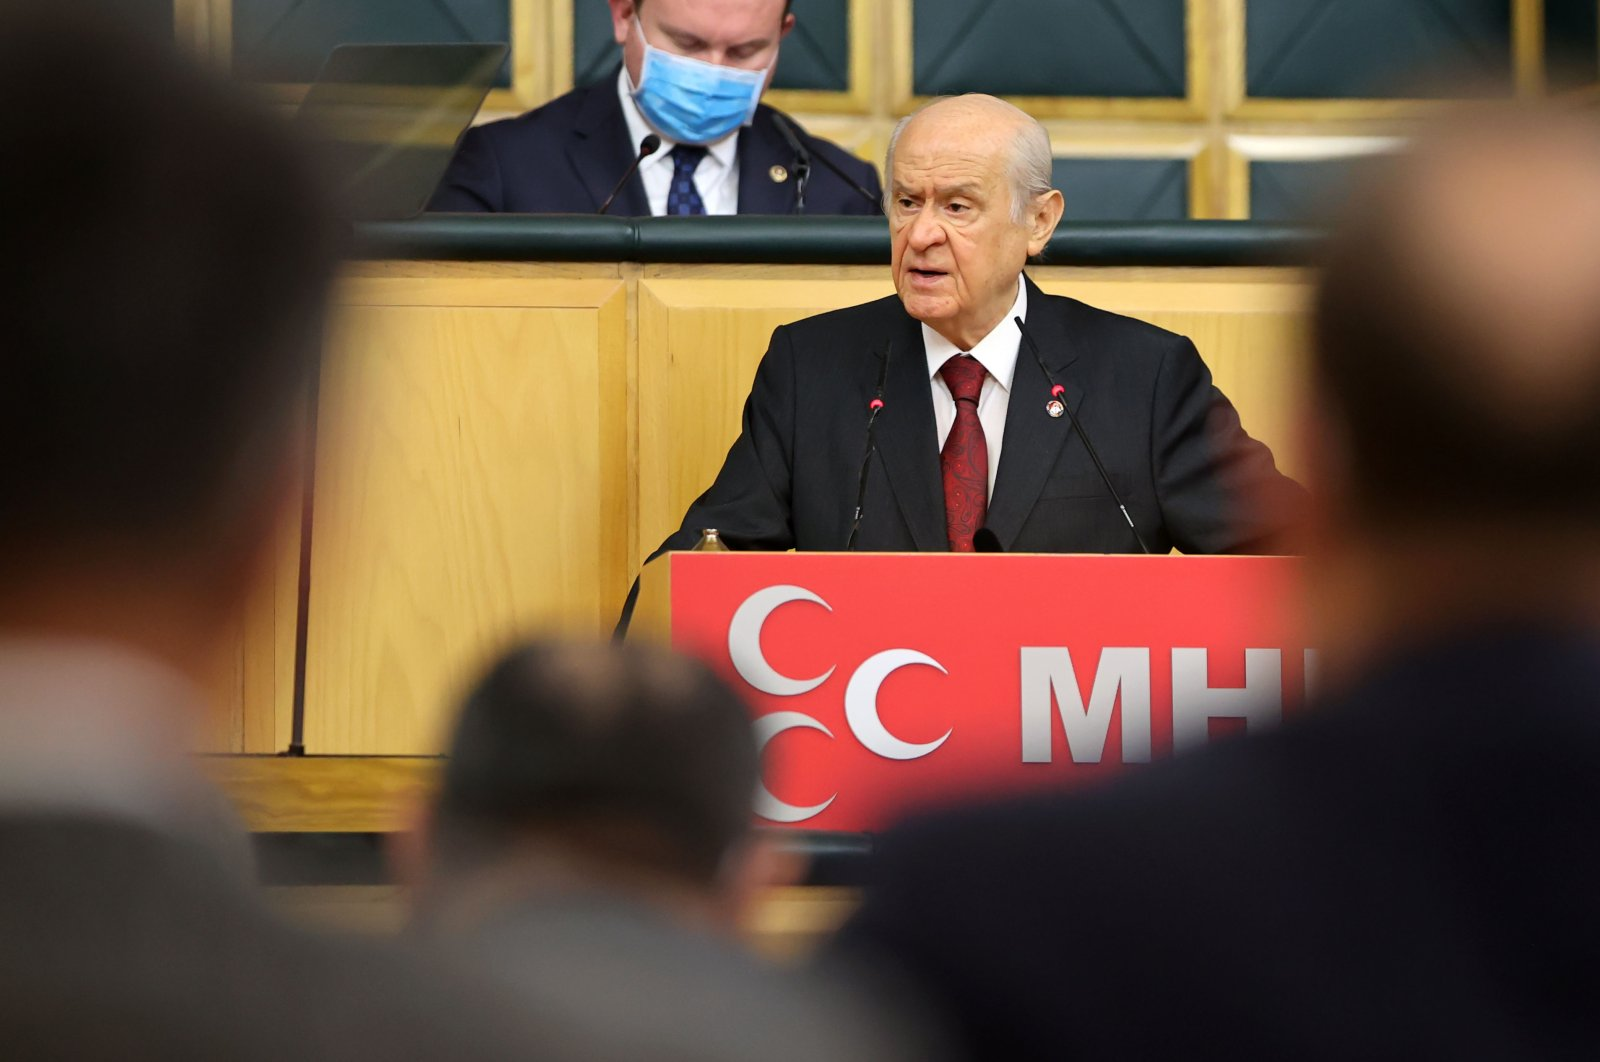 Head of the Nationalist Movement Party (MHP) Devlet Bahçeli speaking at his party's parliamentary group meeting in Ankara, Feb. 9, 2021. (AA Photo)